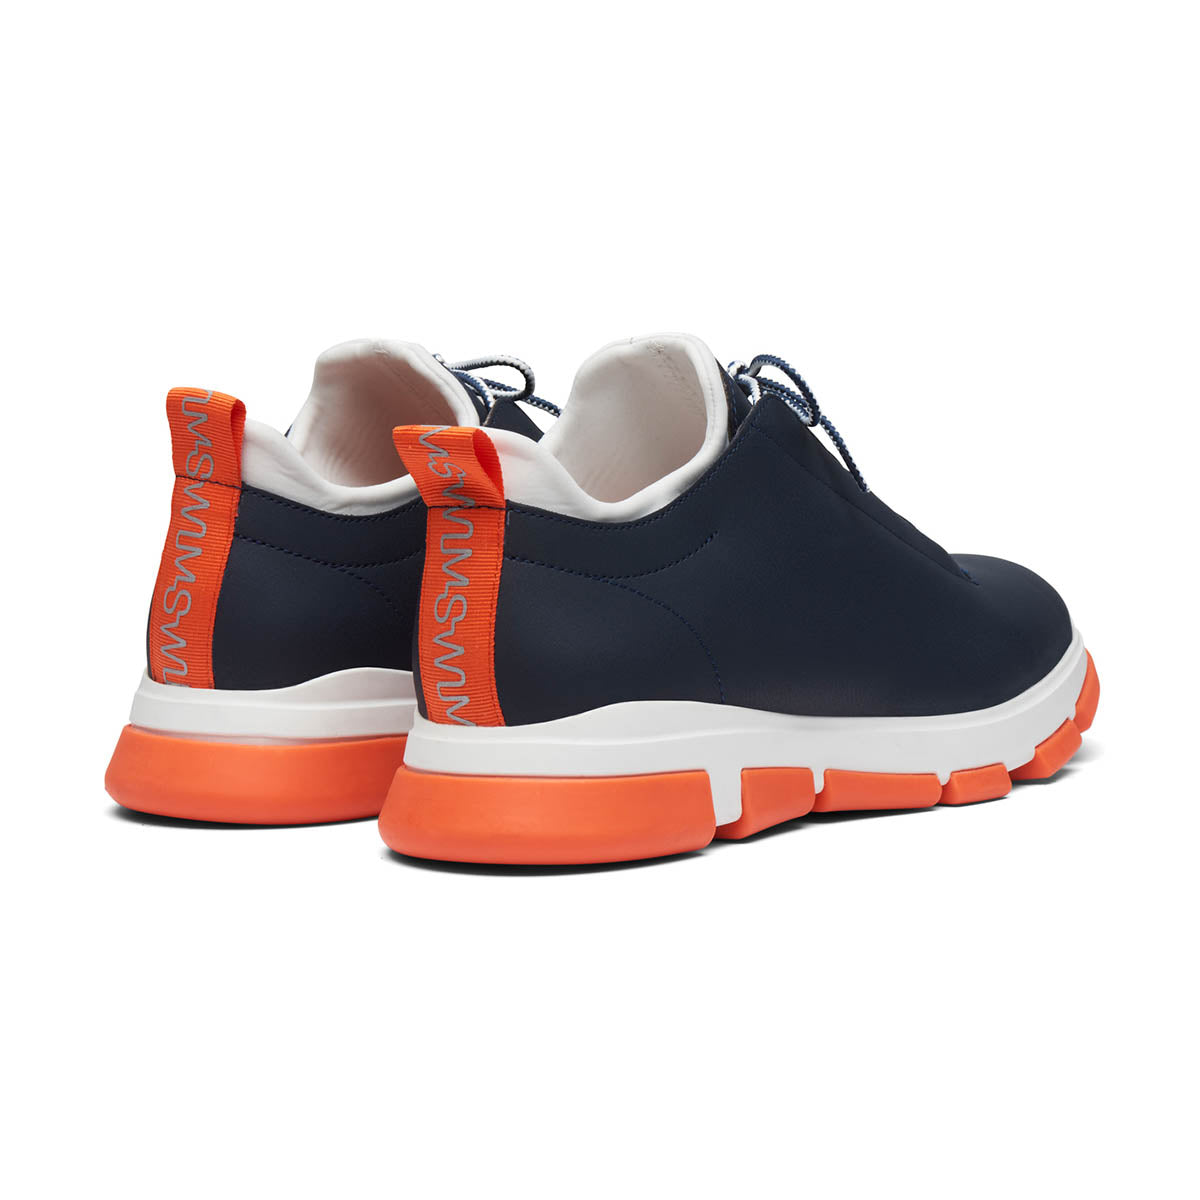 City Hiker Low - background::white,variant::Navy/White/Orange